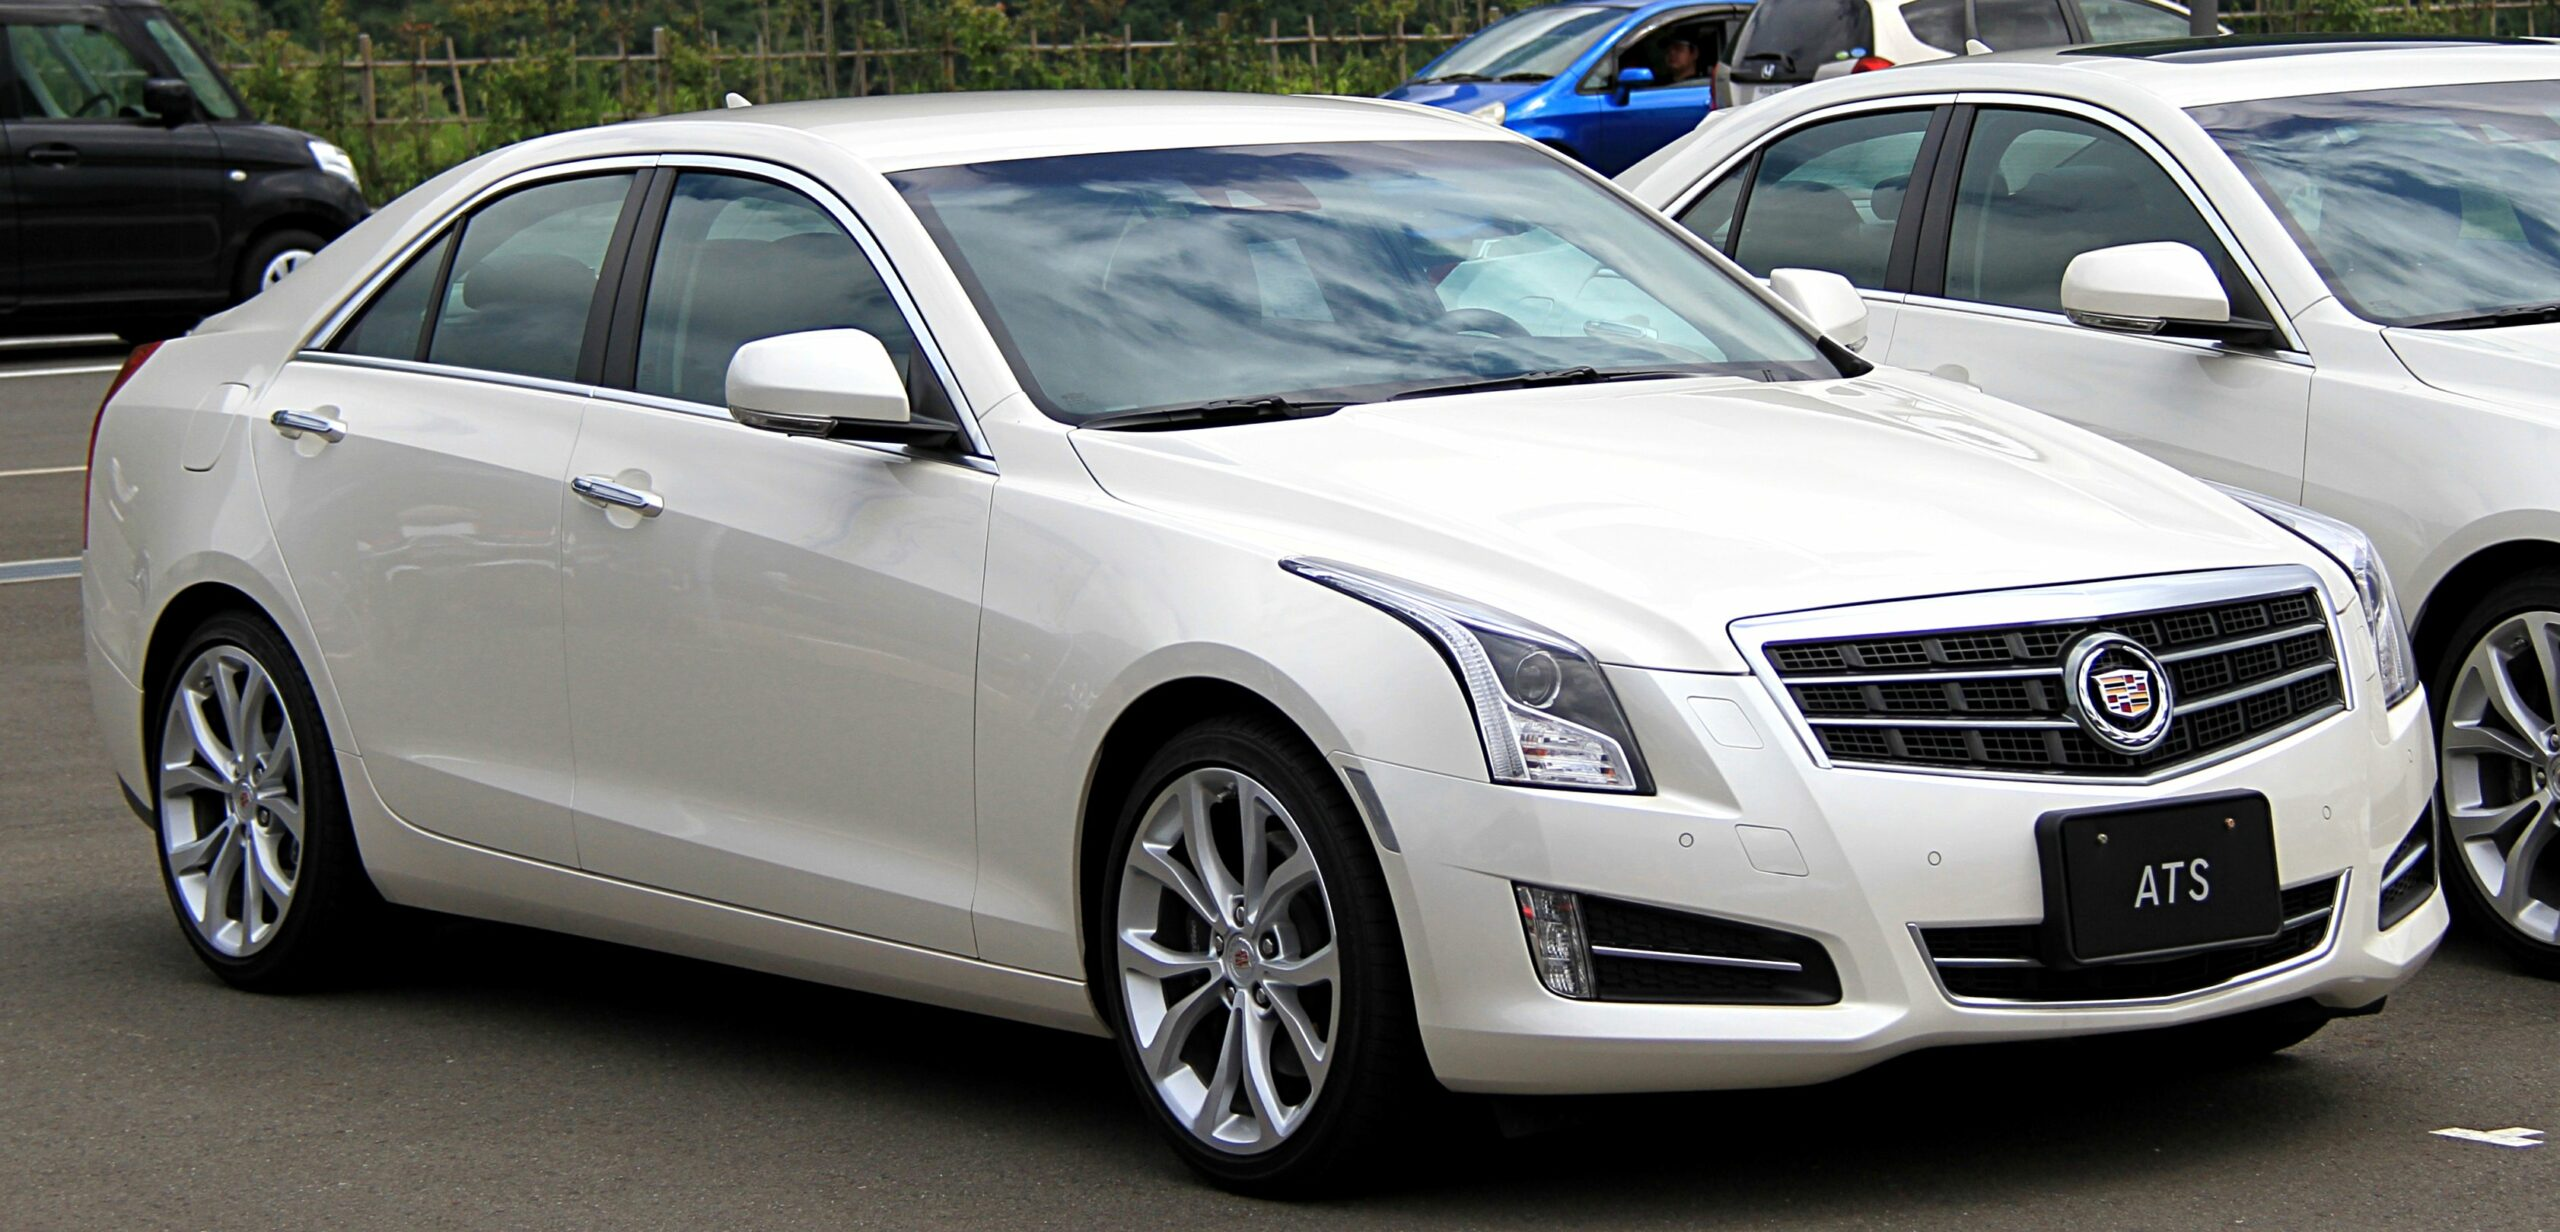 cadillac ats 2020 release date Engine